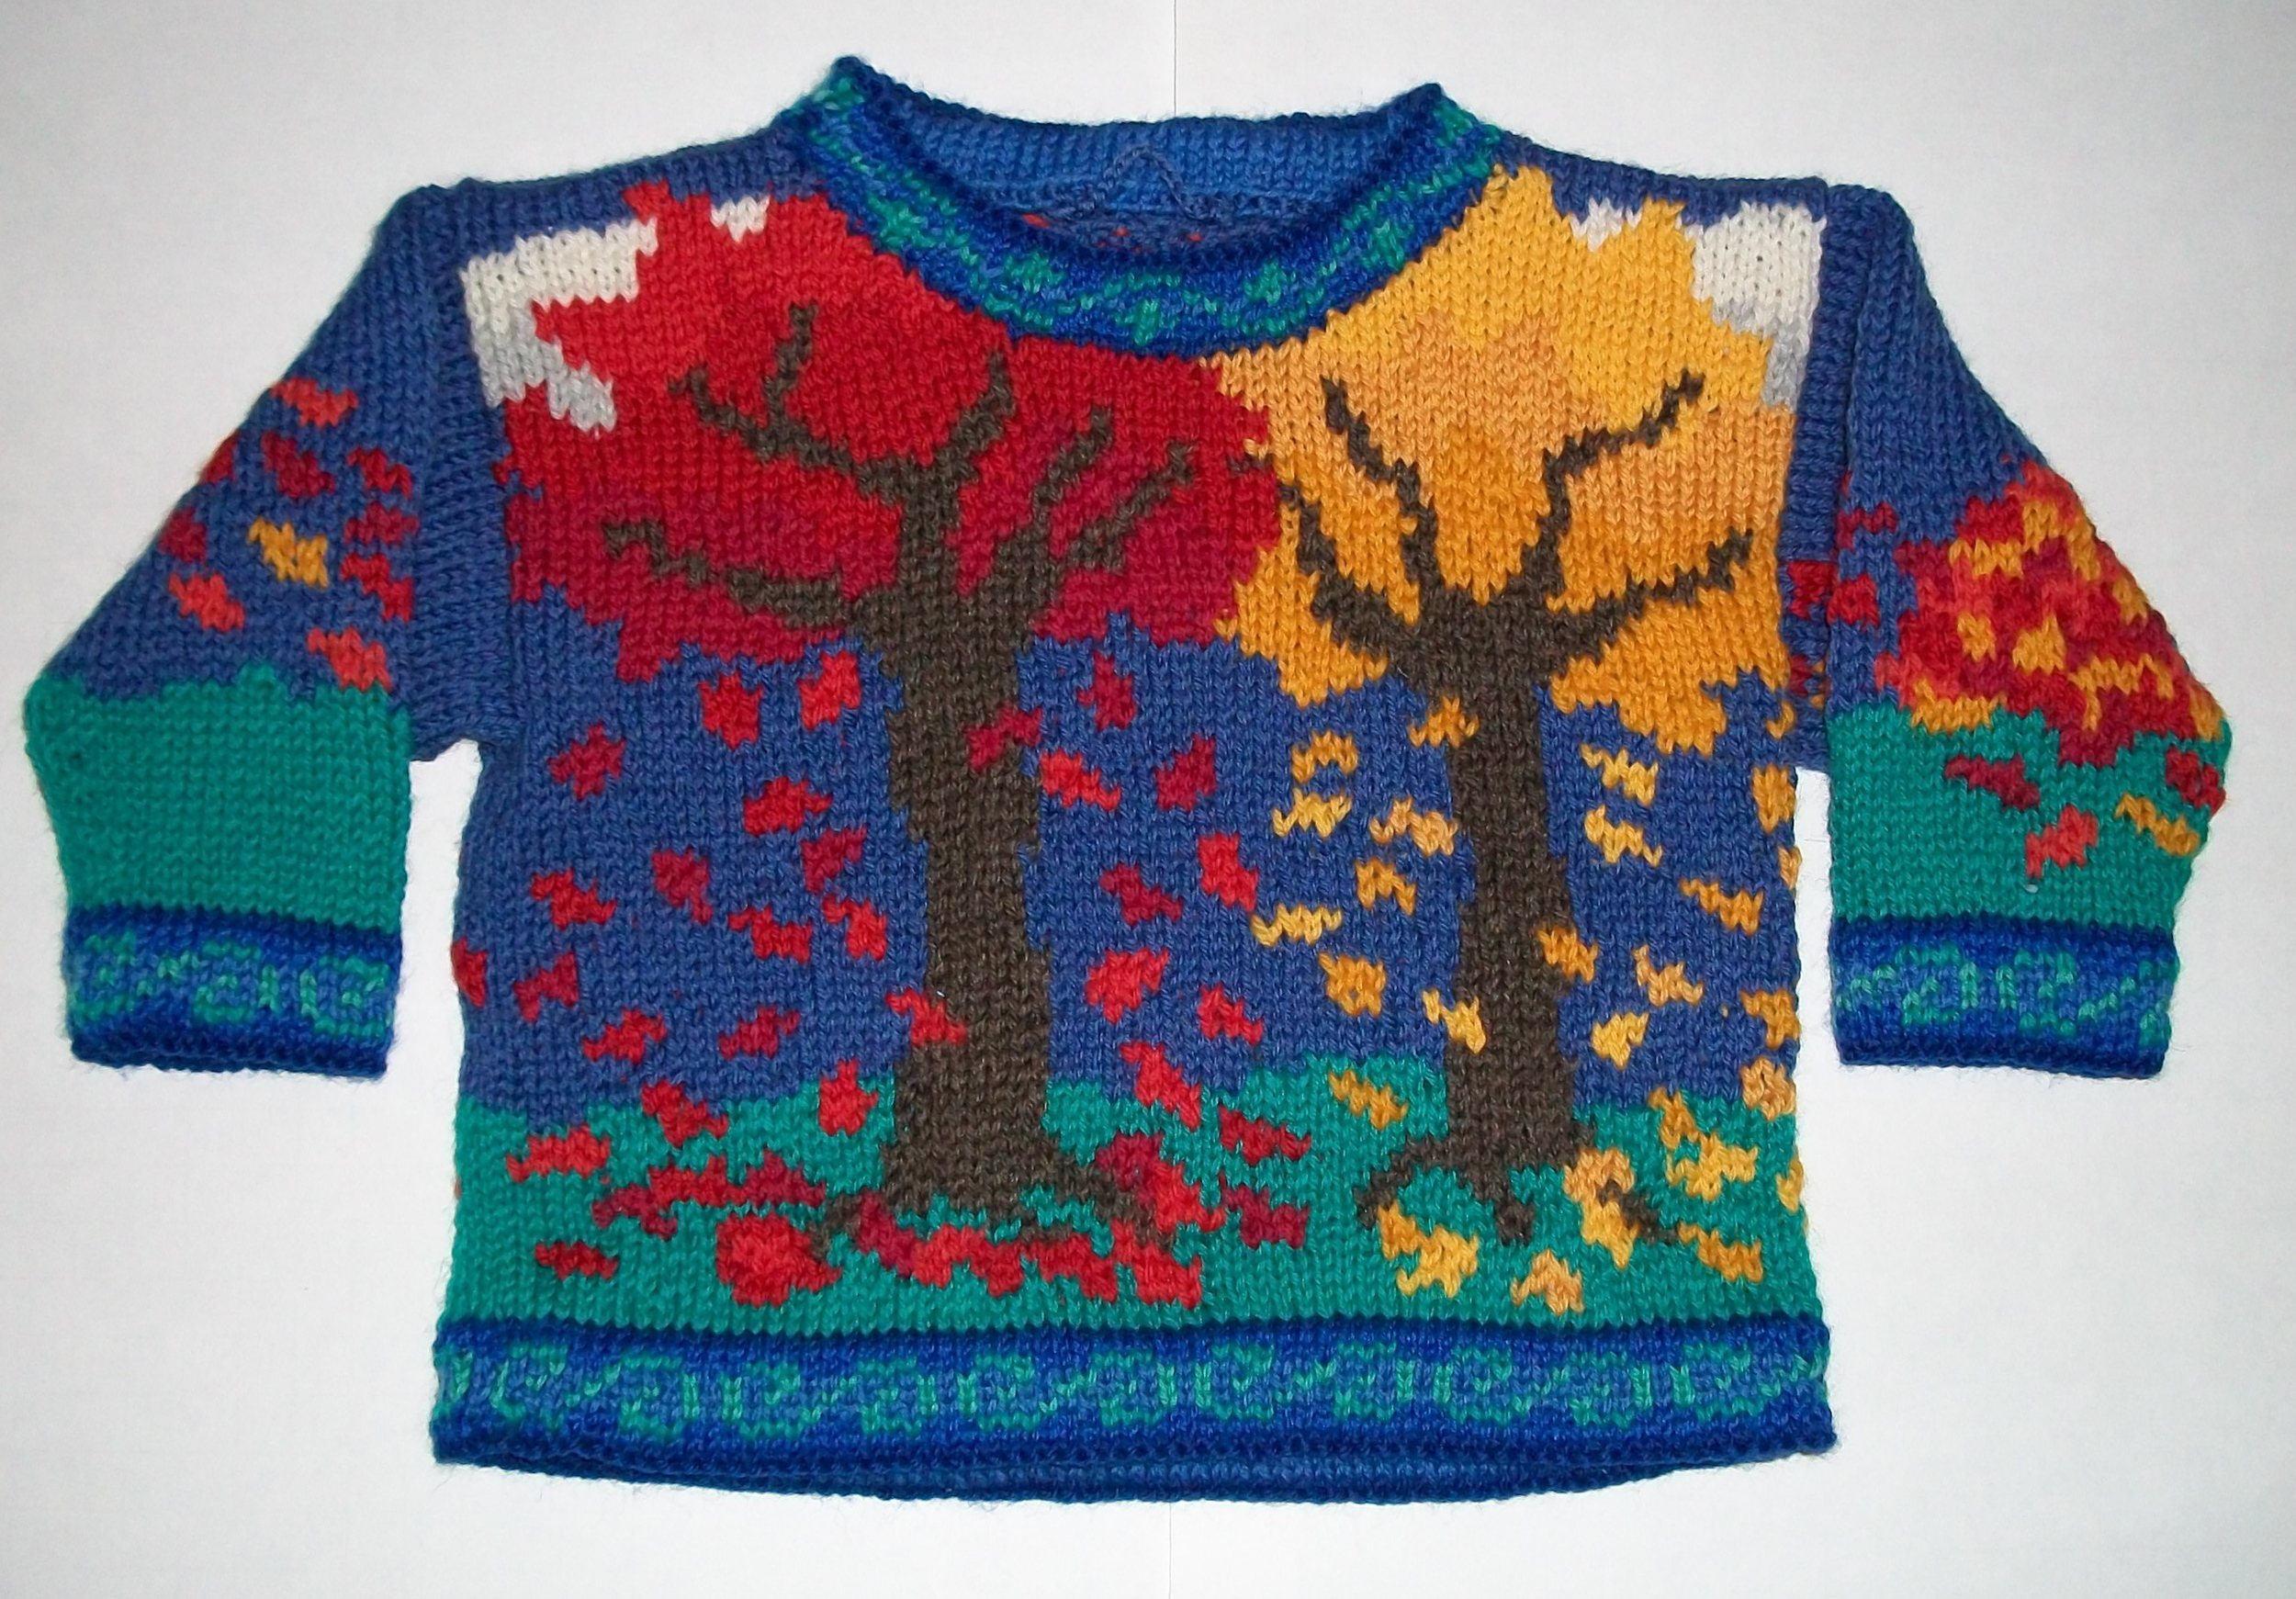 ONE YEAR: FALLING LEAVES FRONT    On the front are two autumn trees losing their leaves in the wind. On the back a pile of leaves is forming. The right and left sleeves also have piles of leaves in shades from red to gold. The neck, wrists, and hem trim is turquoise swirls on dark blue.